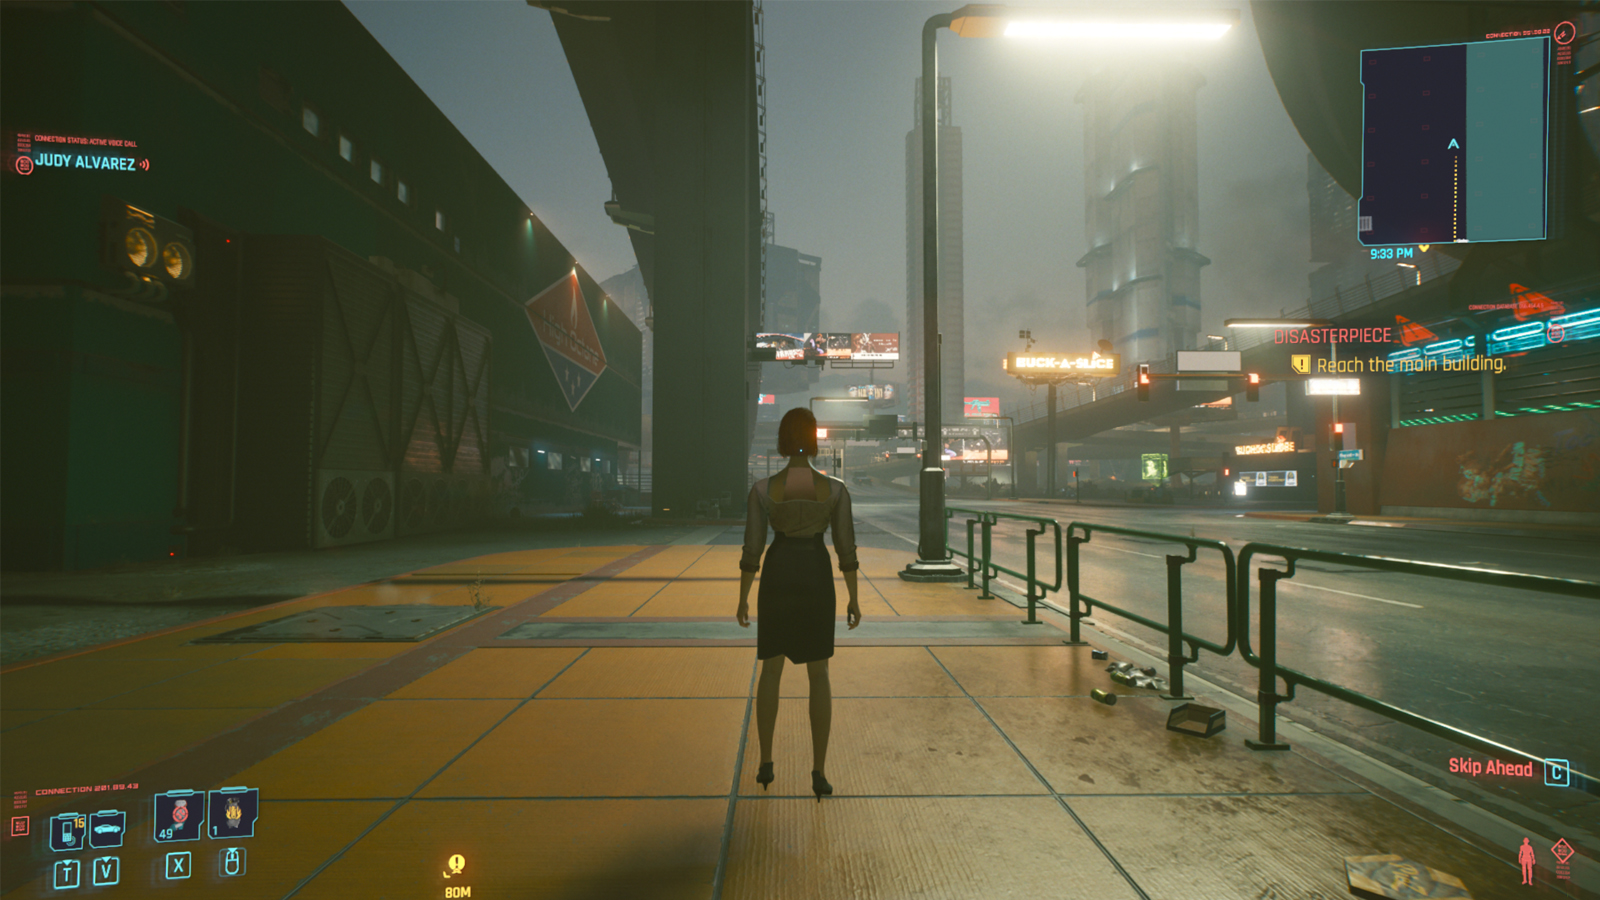 Image showcasing the third-person mod in Cyberpunk 2077